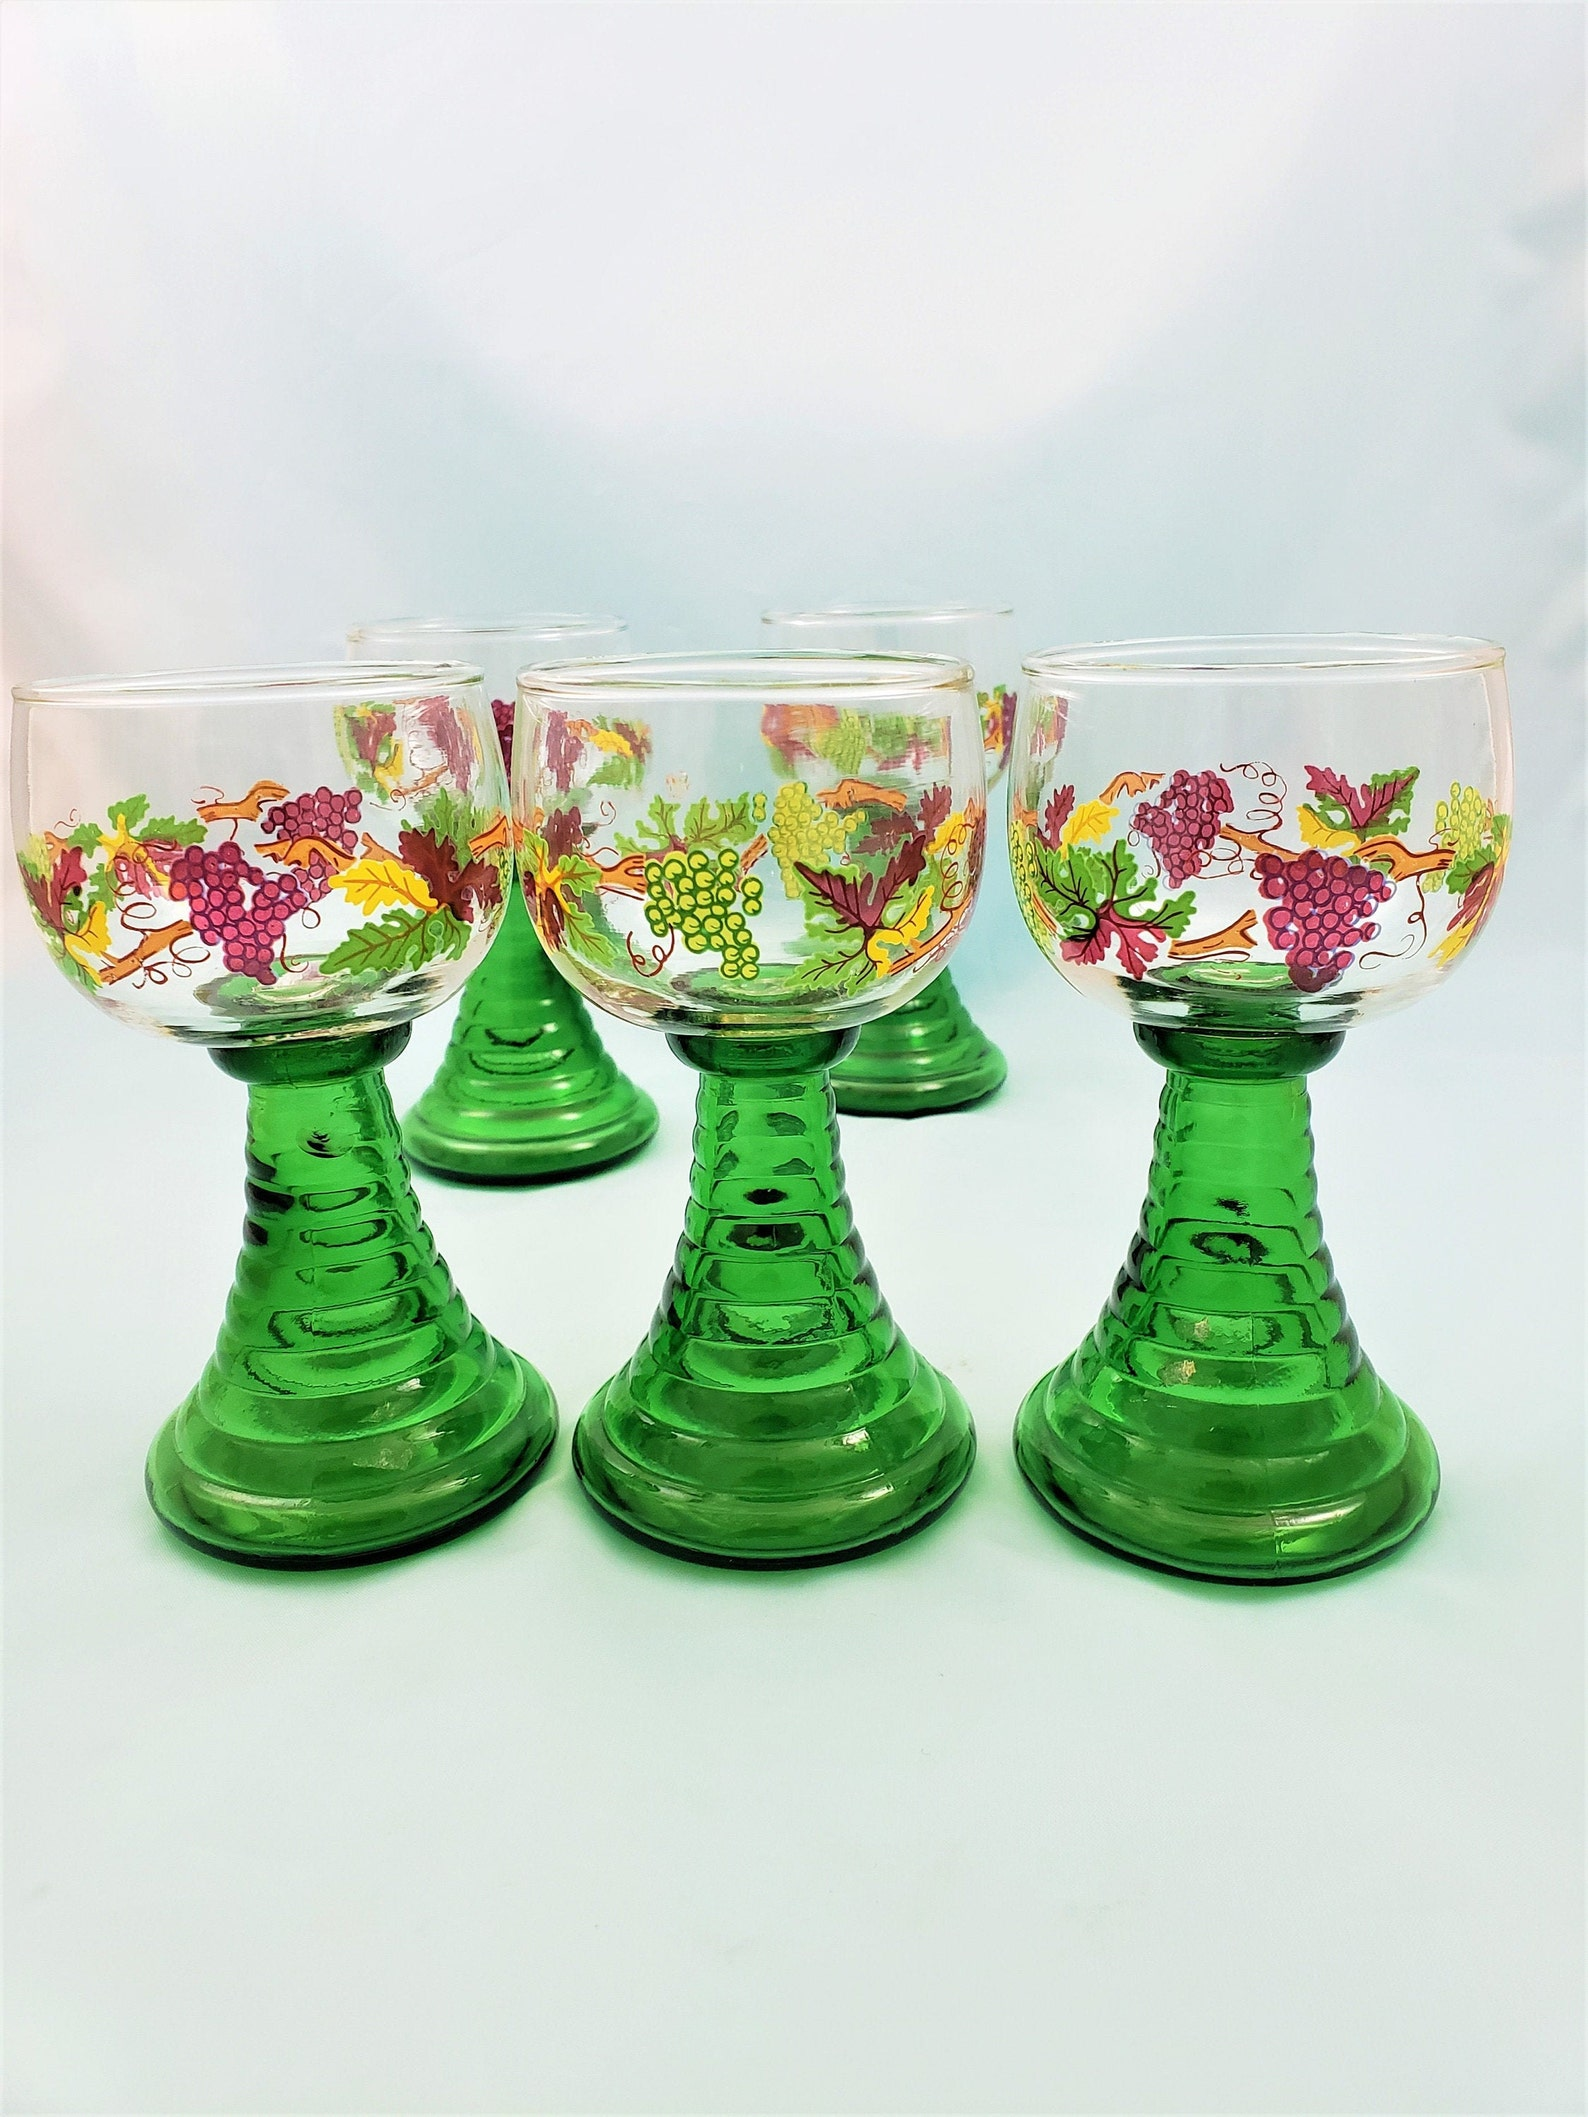 German Roemer Wine Glass with Grapes and Leaves Set of 5